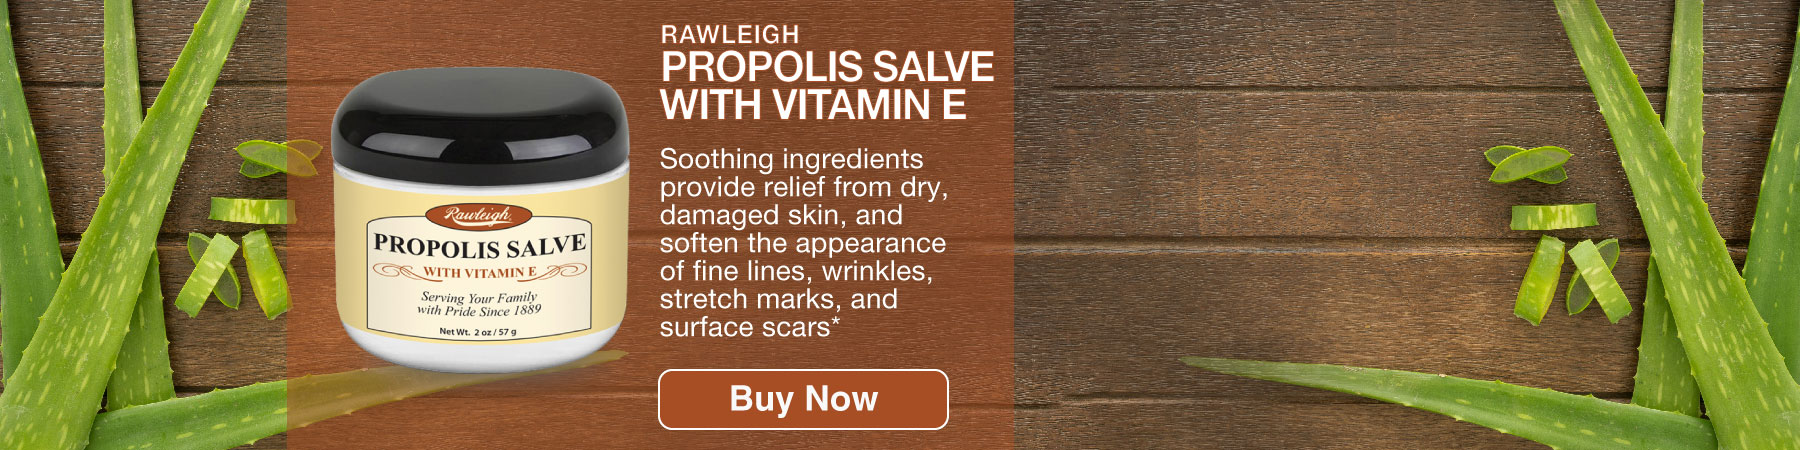 Propolis Salve with Vitamin E